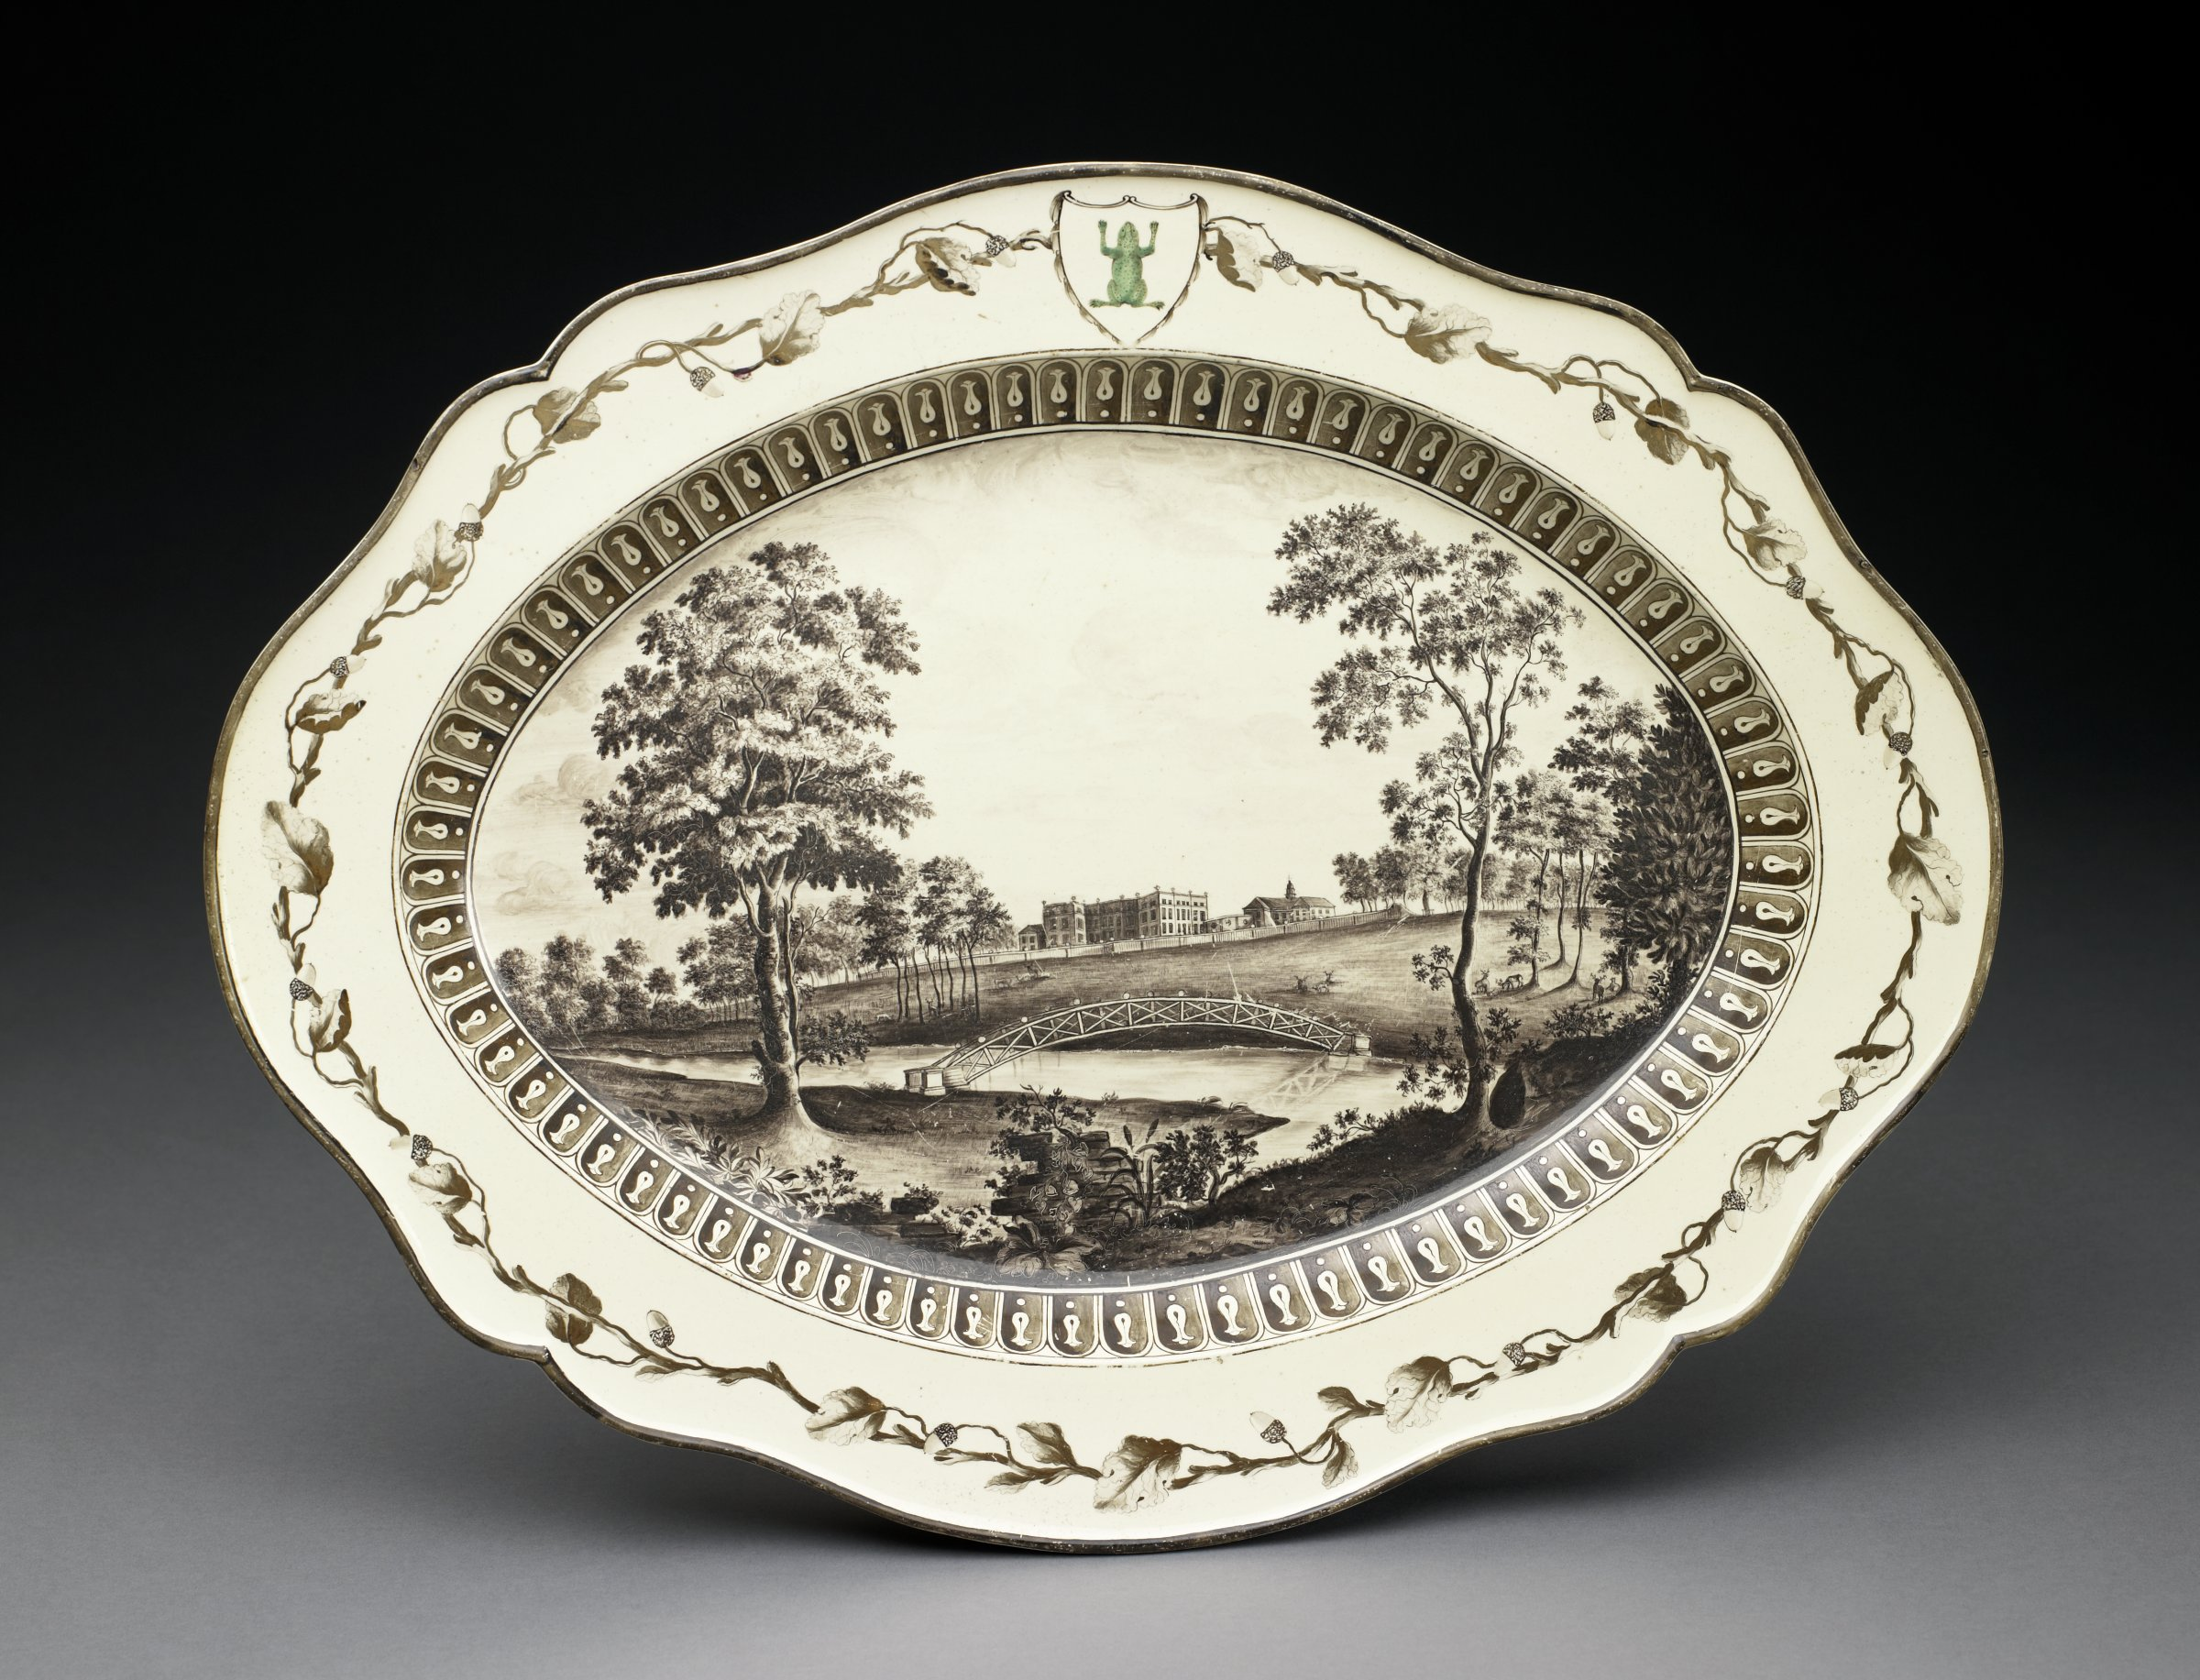 Large creamware platter of 'Catherine' shape, the center hand-painted in monochrome mulberry black with a view of Ditchley Park in Oxfordshire showing the house and stables in the background with the estate's park, a river, and a bridge between two trees in the foreground within a border of gadroons, the rim with a garland of oak leaves and acorns with the green frog crest within a cartouche at the top.